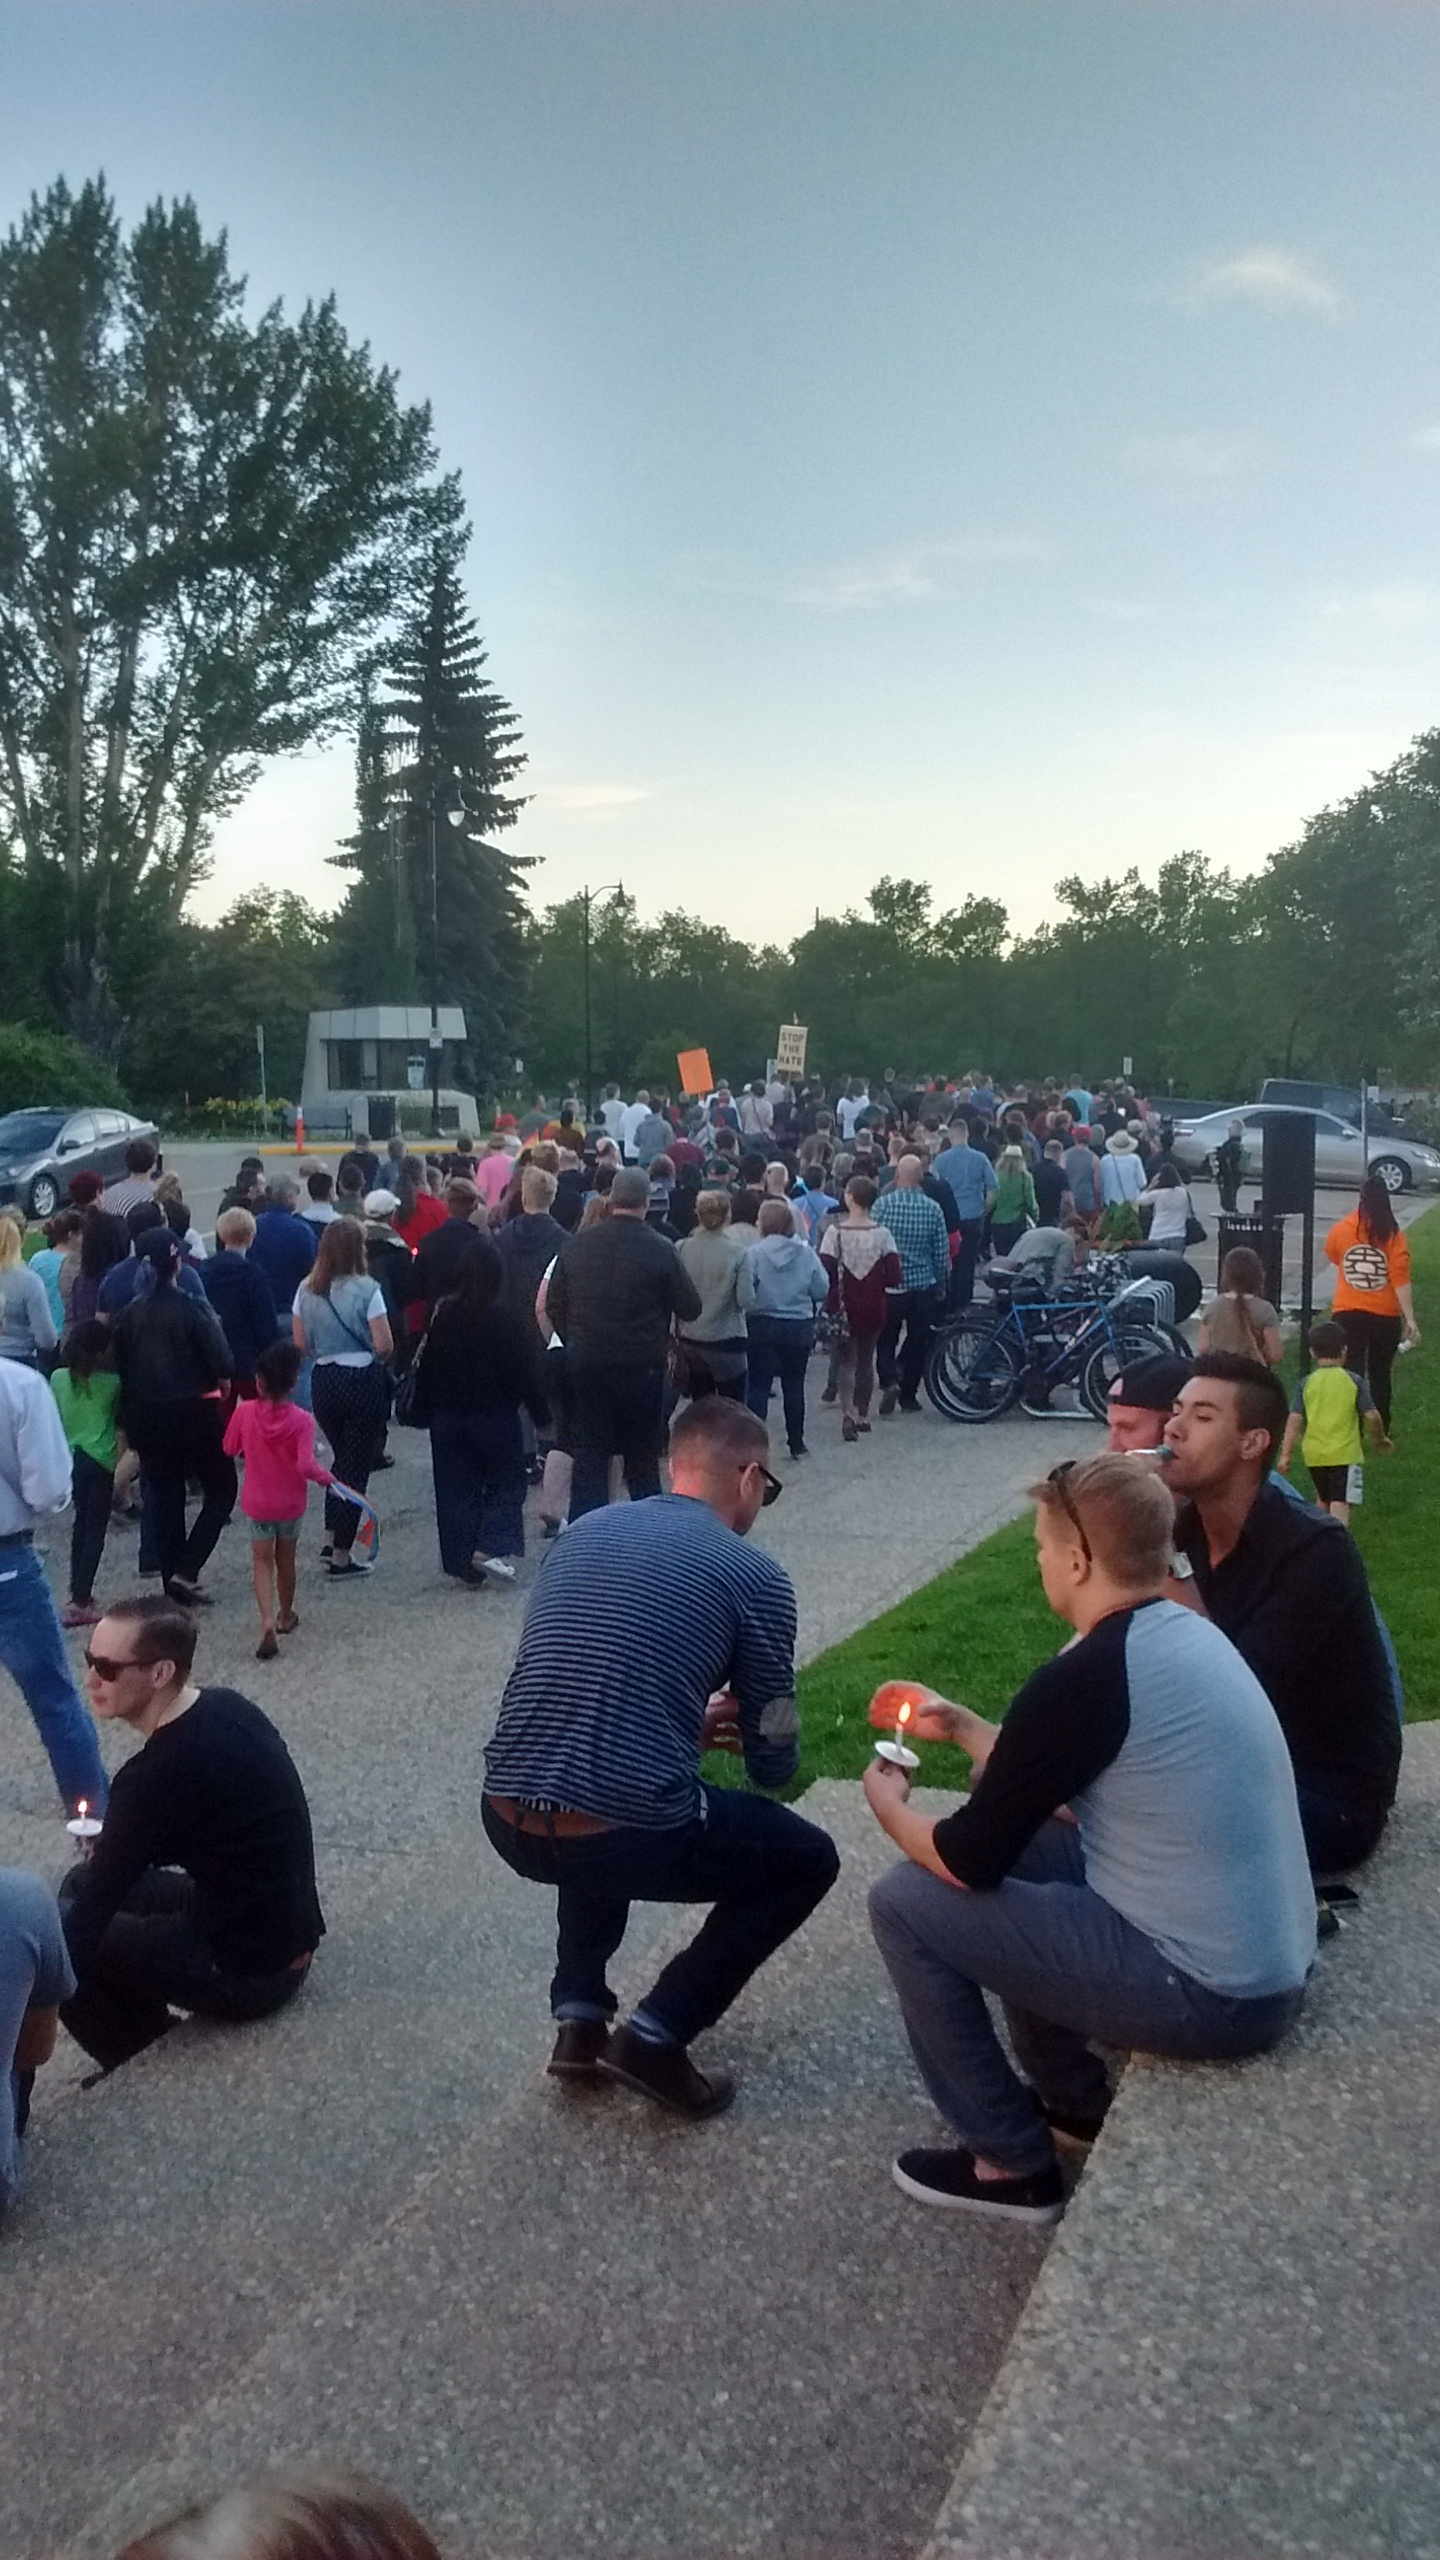 The Edmonton vigil for Orlando